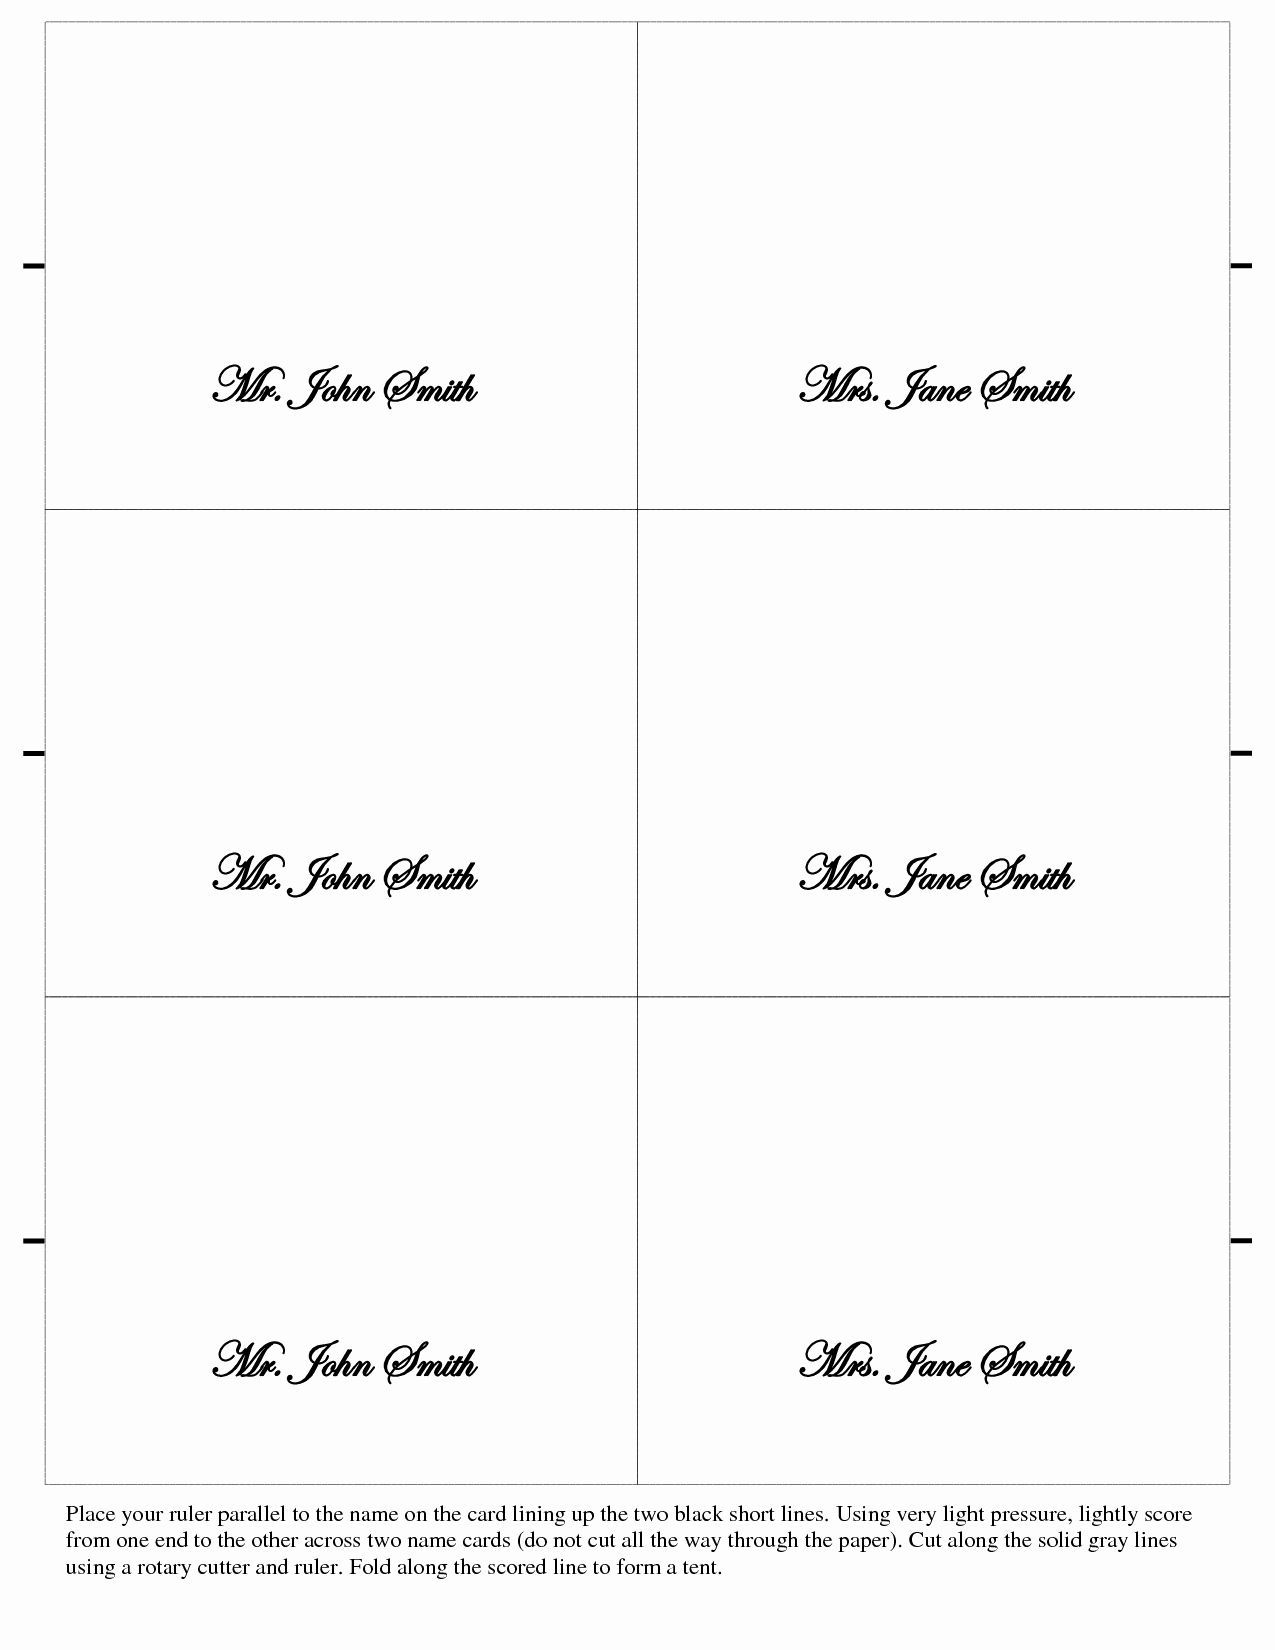 006 Surprising Place Card Template Word High Resolution  Free Name Folding Microsoft TableFull